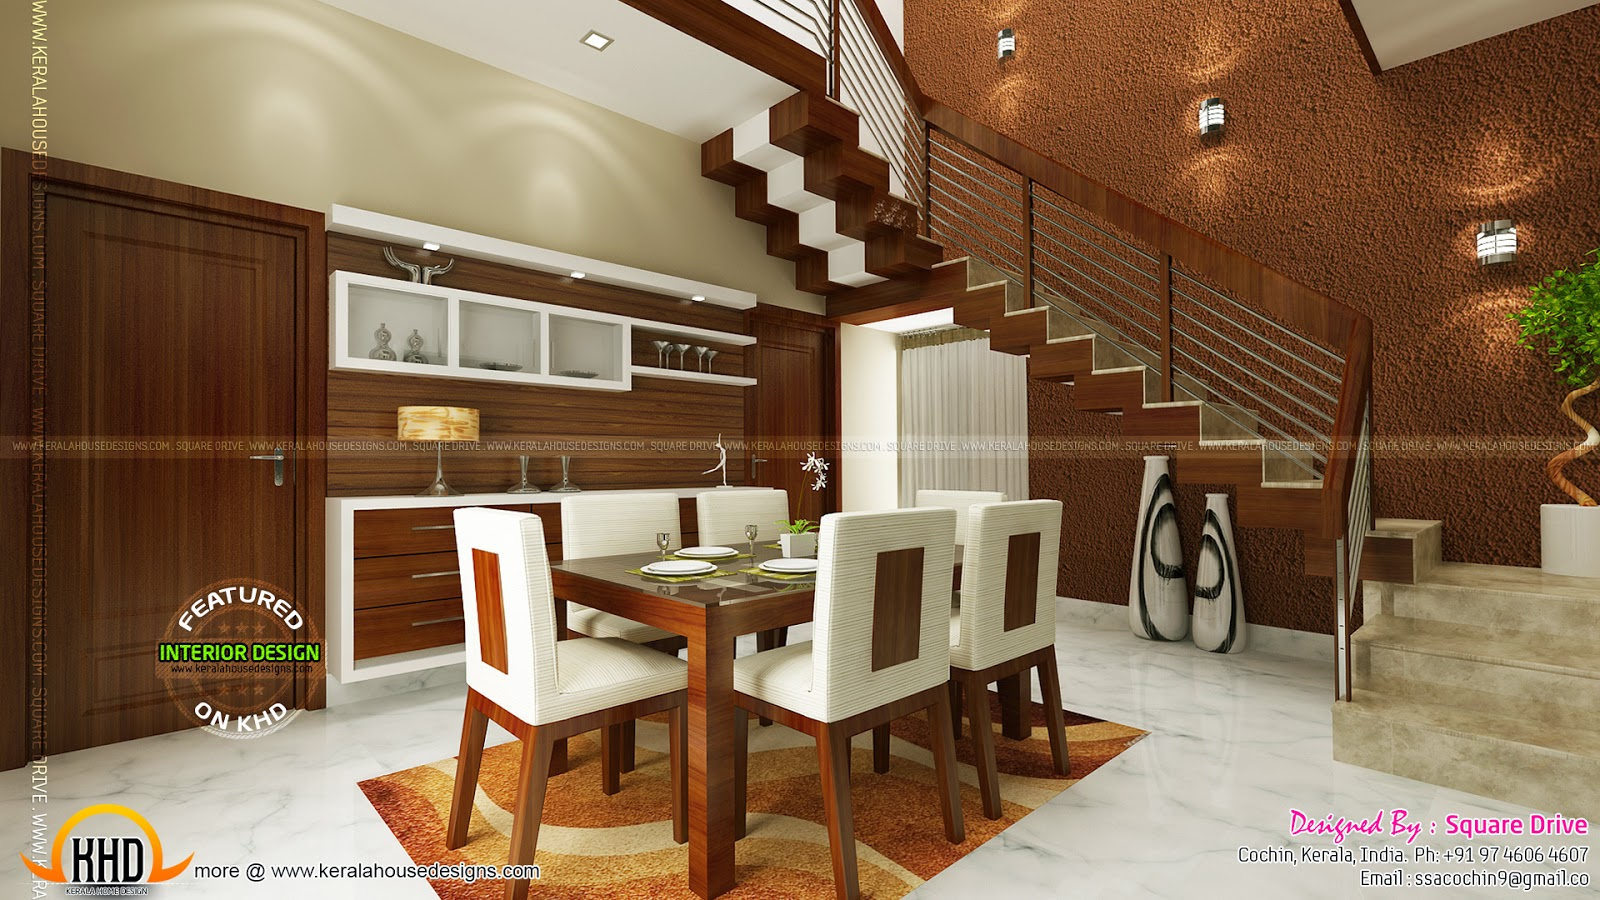 Cochin interior design kerala home design and floor plans for House interior design dining room